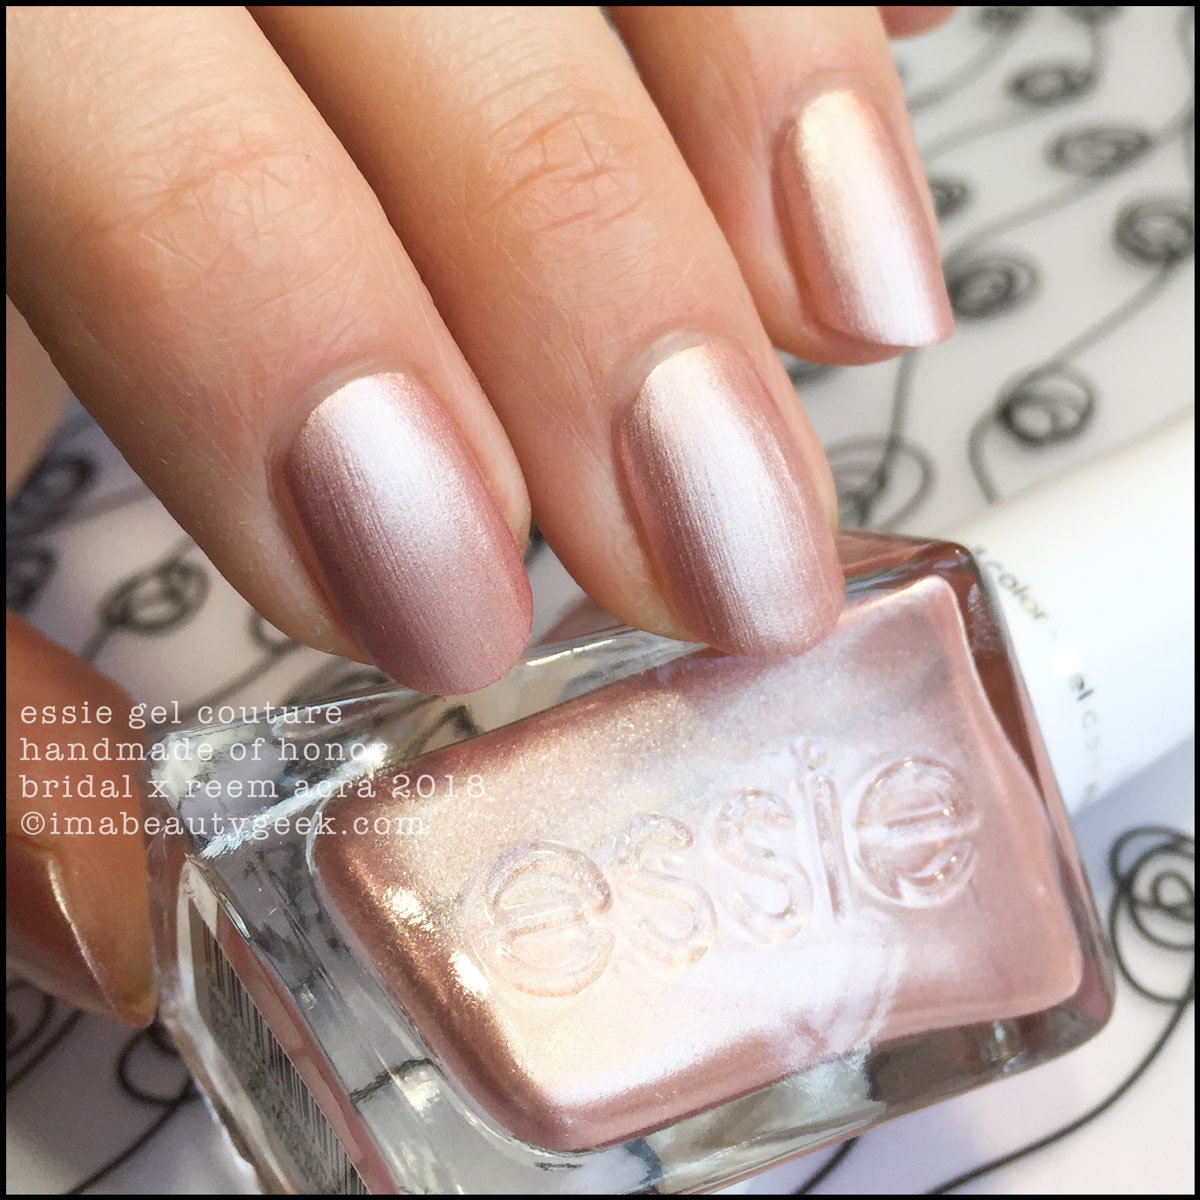 Essie Handmade of Honor - Essie Bridal x Reem Acra Gel Couture 2018